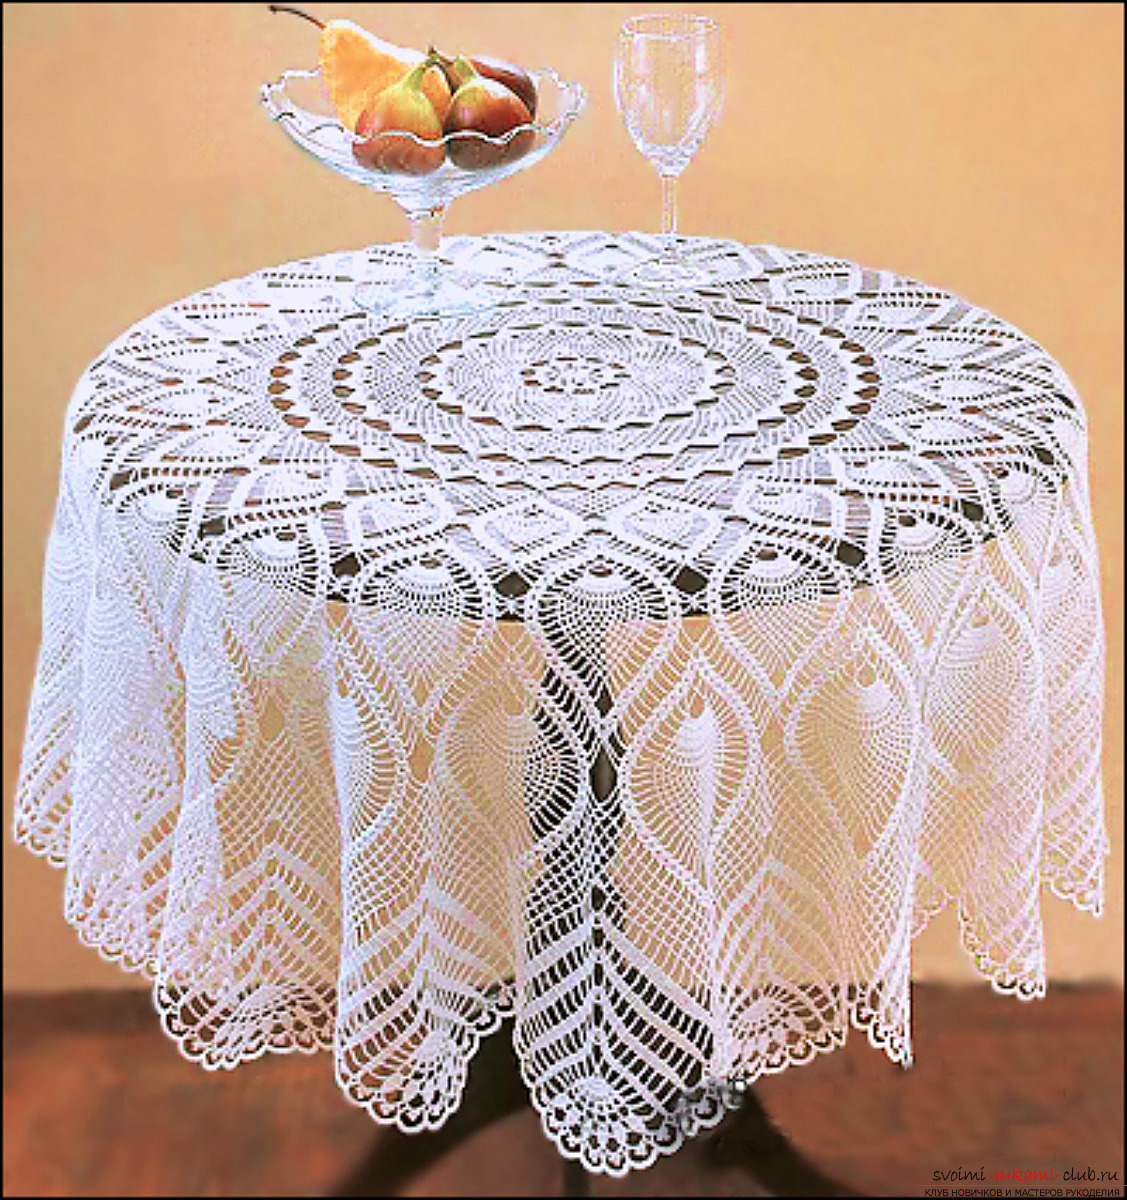 Crochet crocheted tablecloth for the kitchen. Photo №1